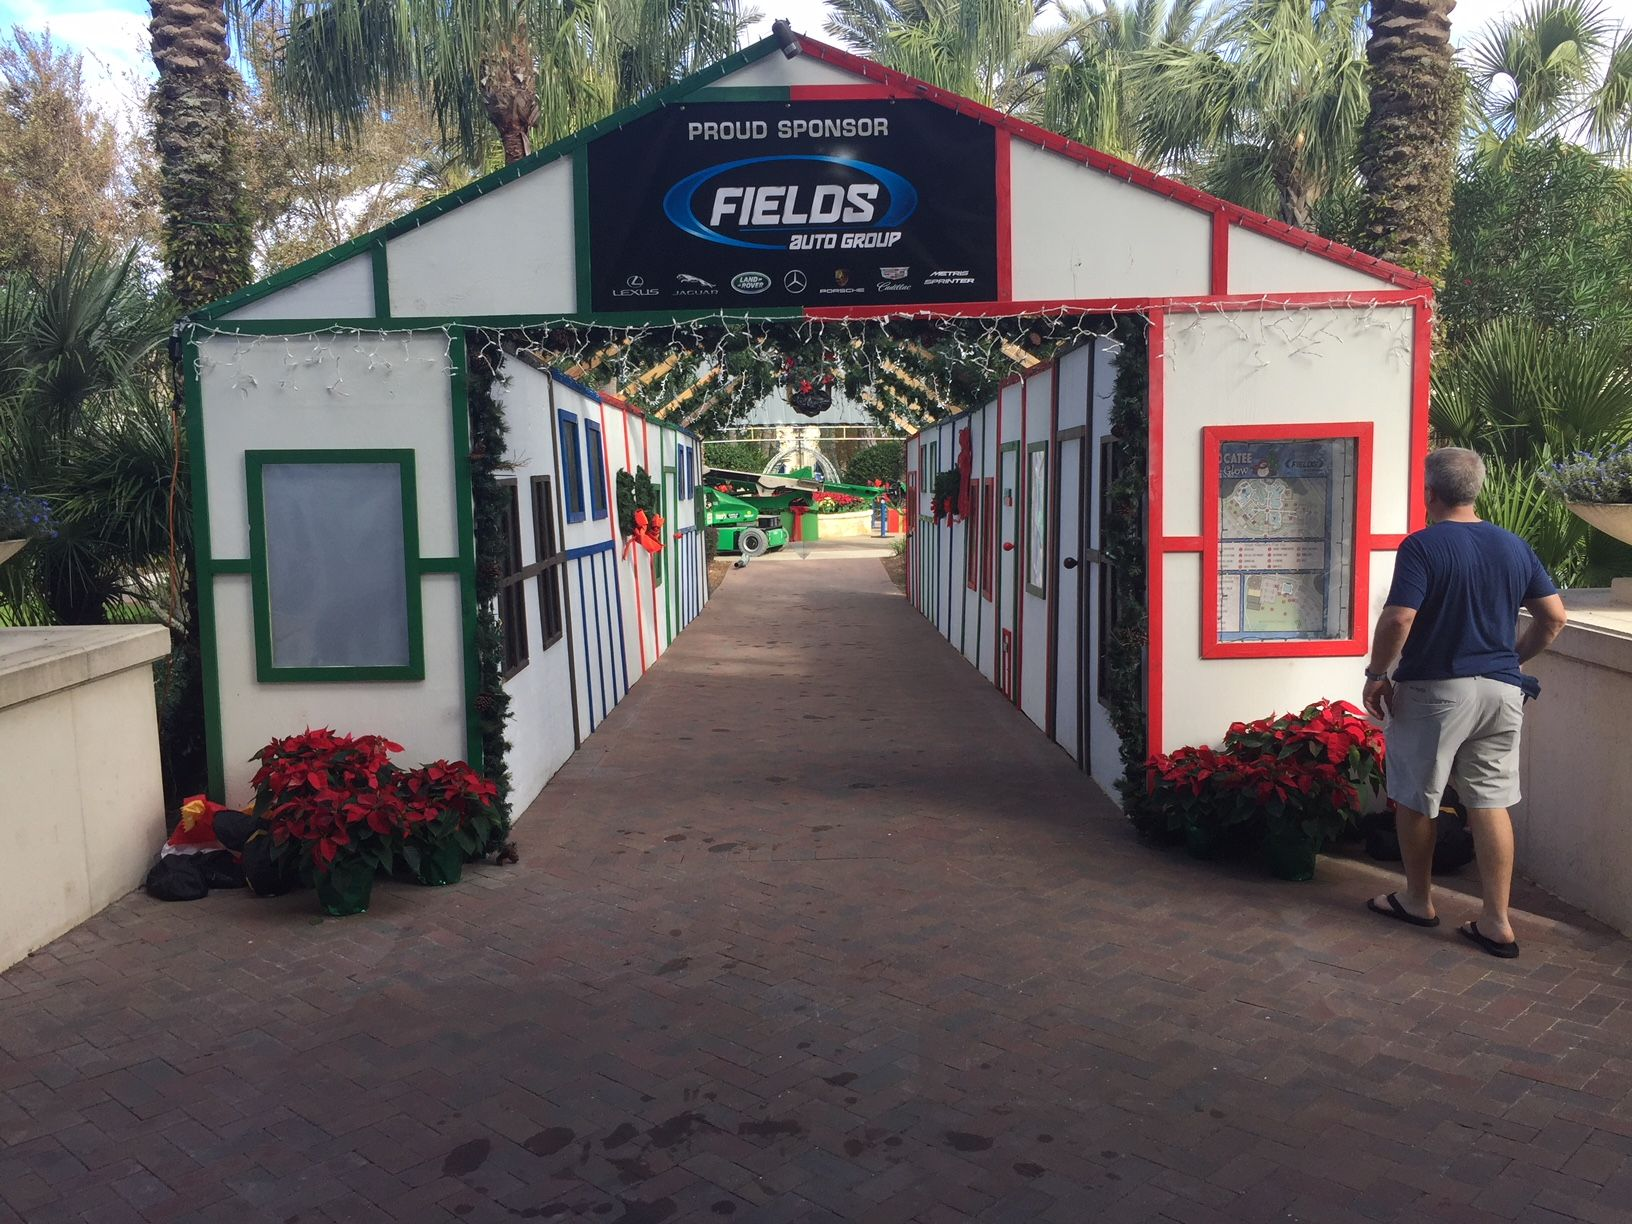 Fields Auto Group was proud to present this year's Nocatee